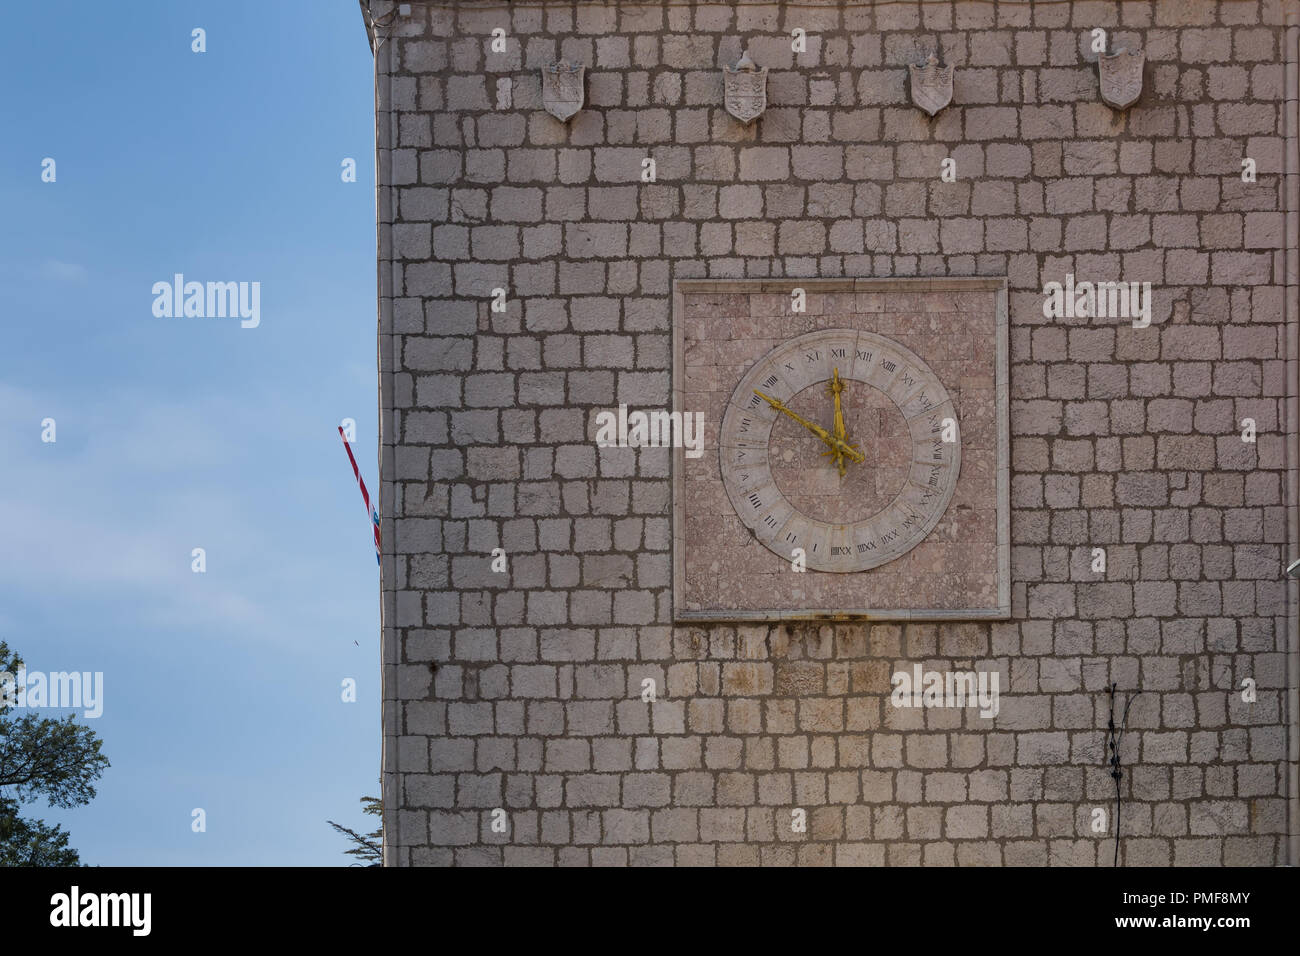 Tower made of stone tiles with clock. Clock are in a square, inner circle, roman numbers. Big square, historic part of town Krk, island Krk, Croatia. - Stock Image